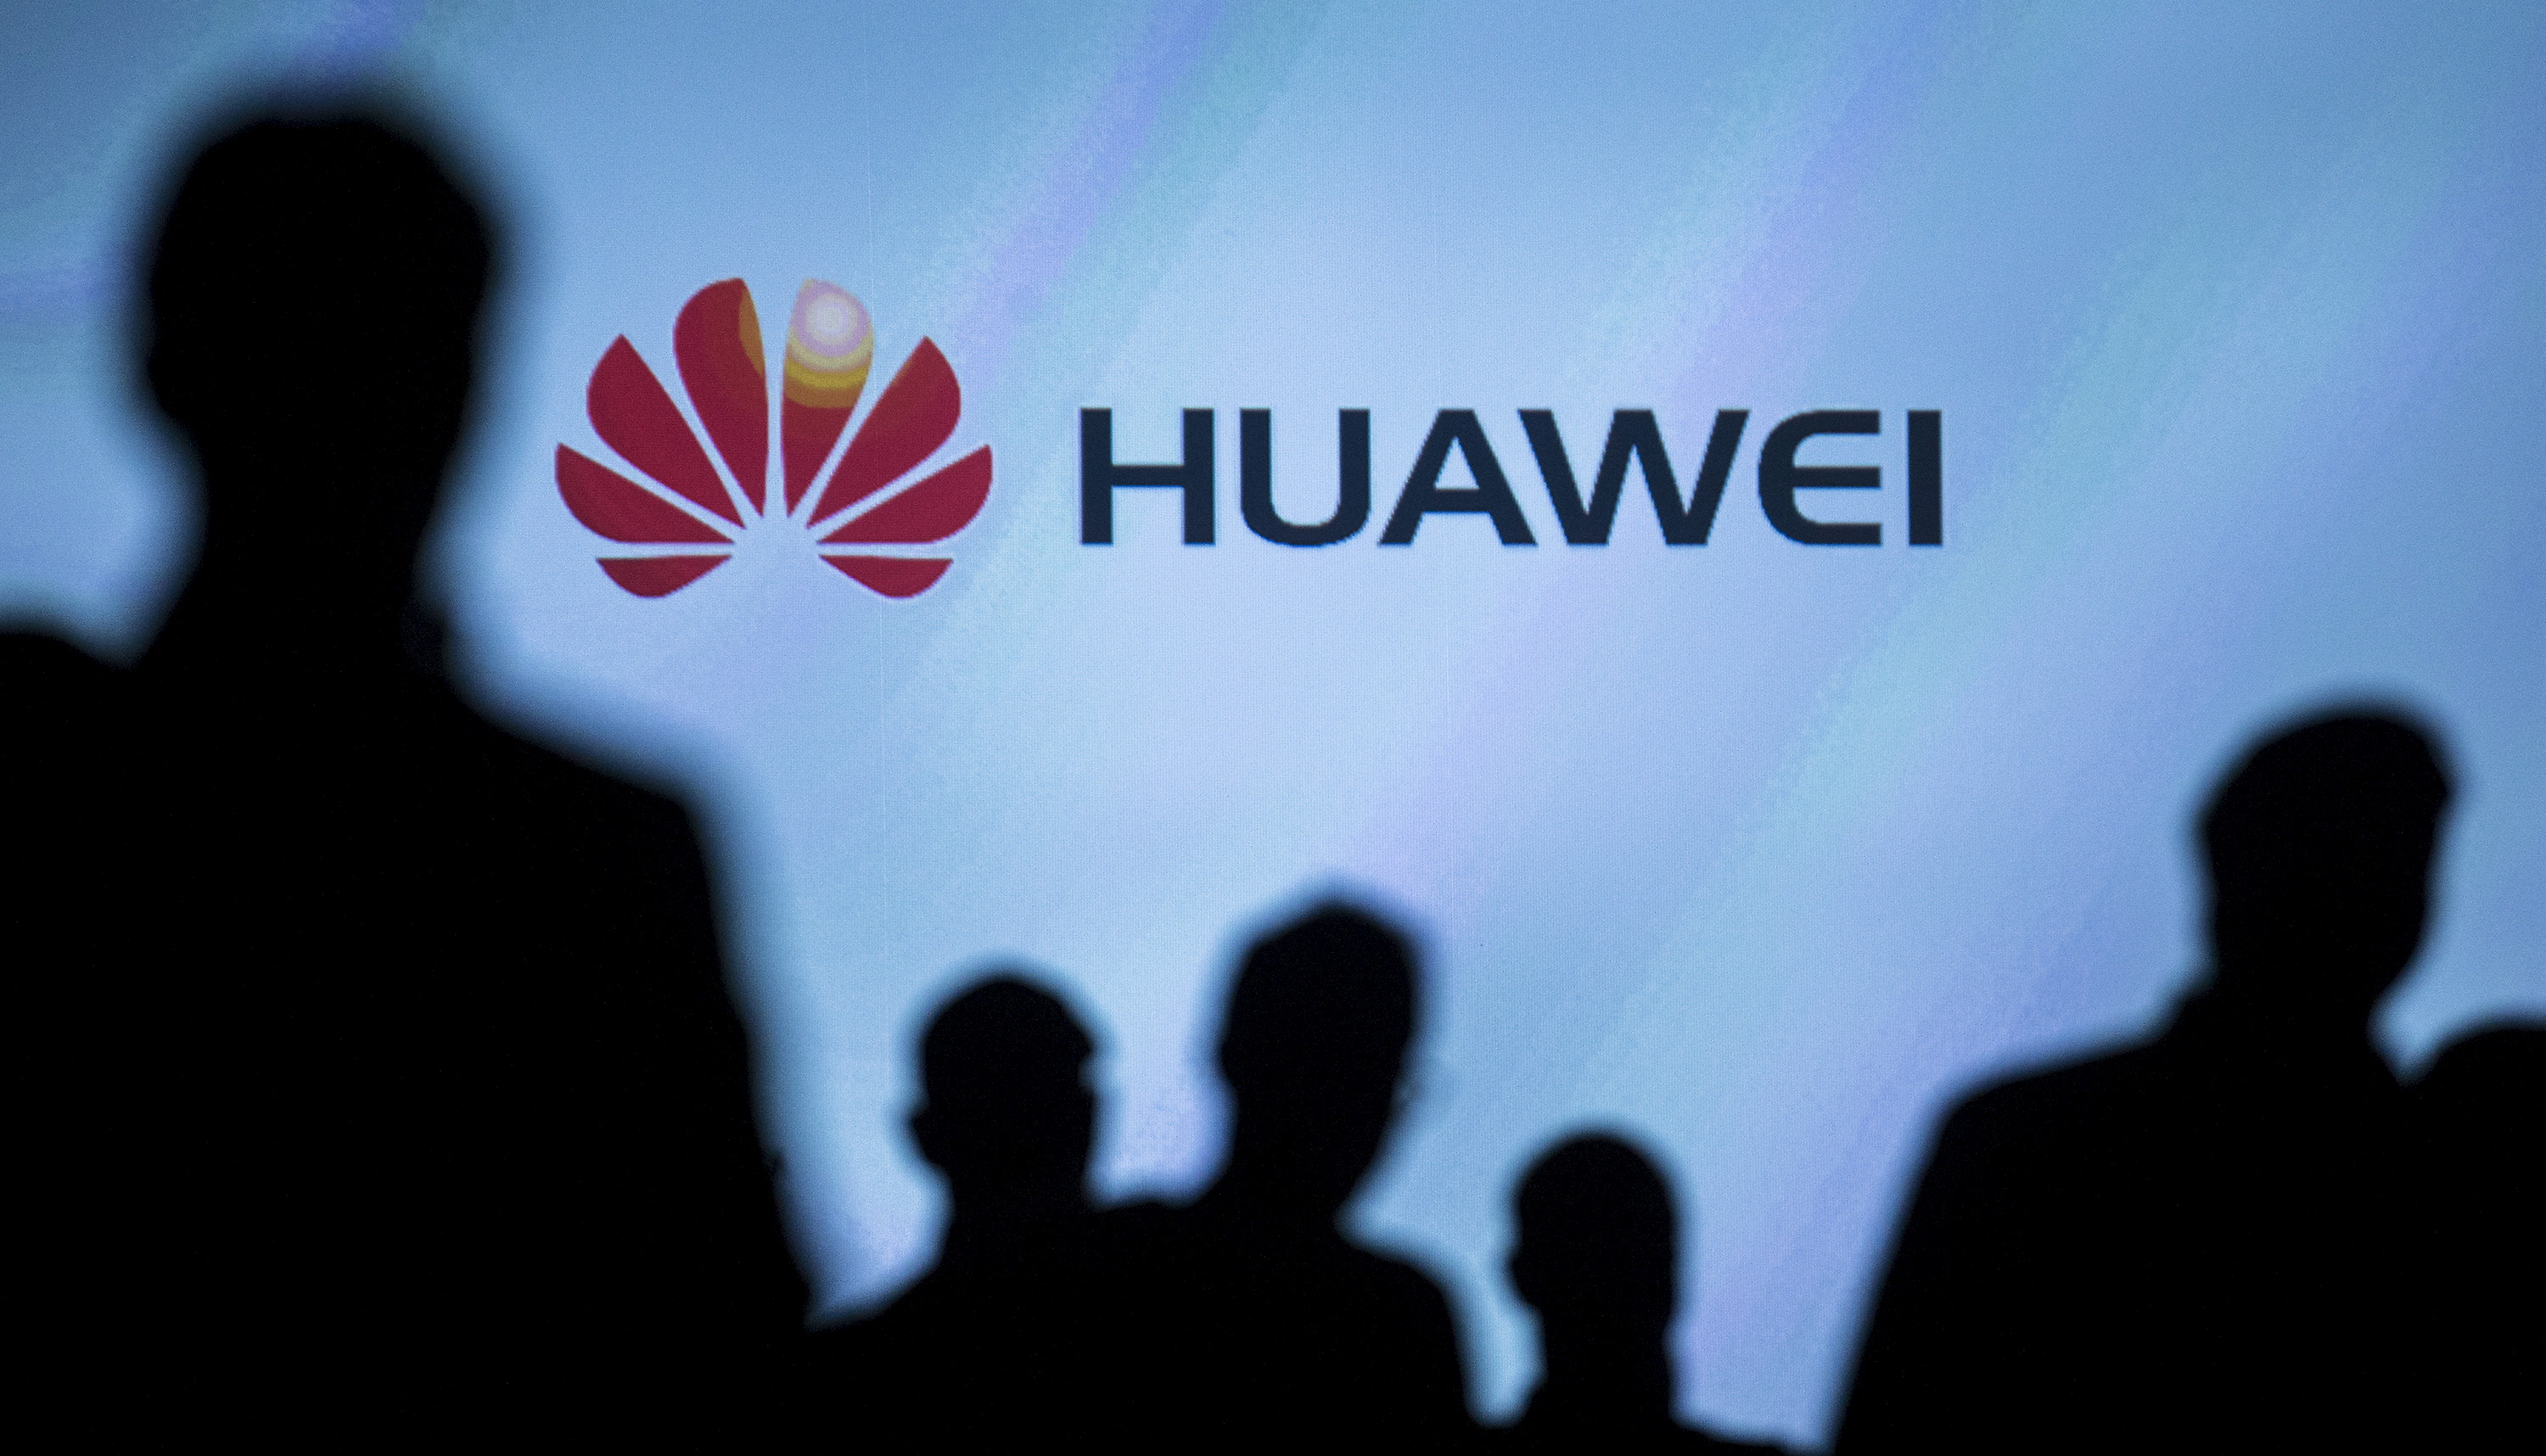 Why Has Google Chosen Unknown Chinese Company Huawei To